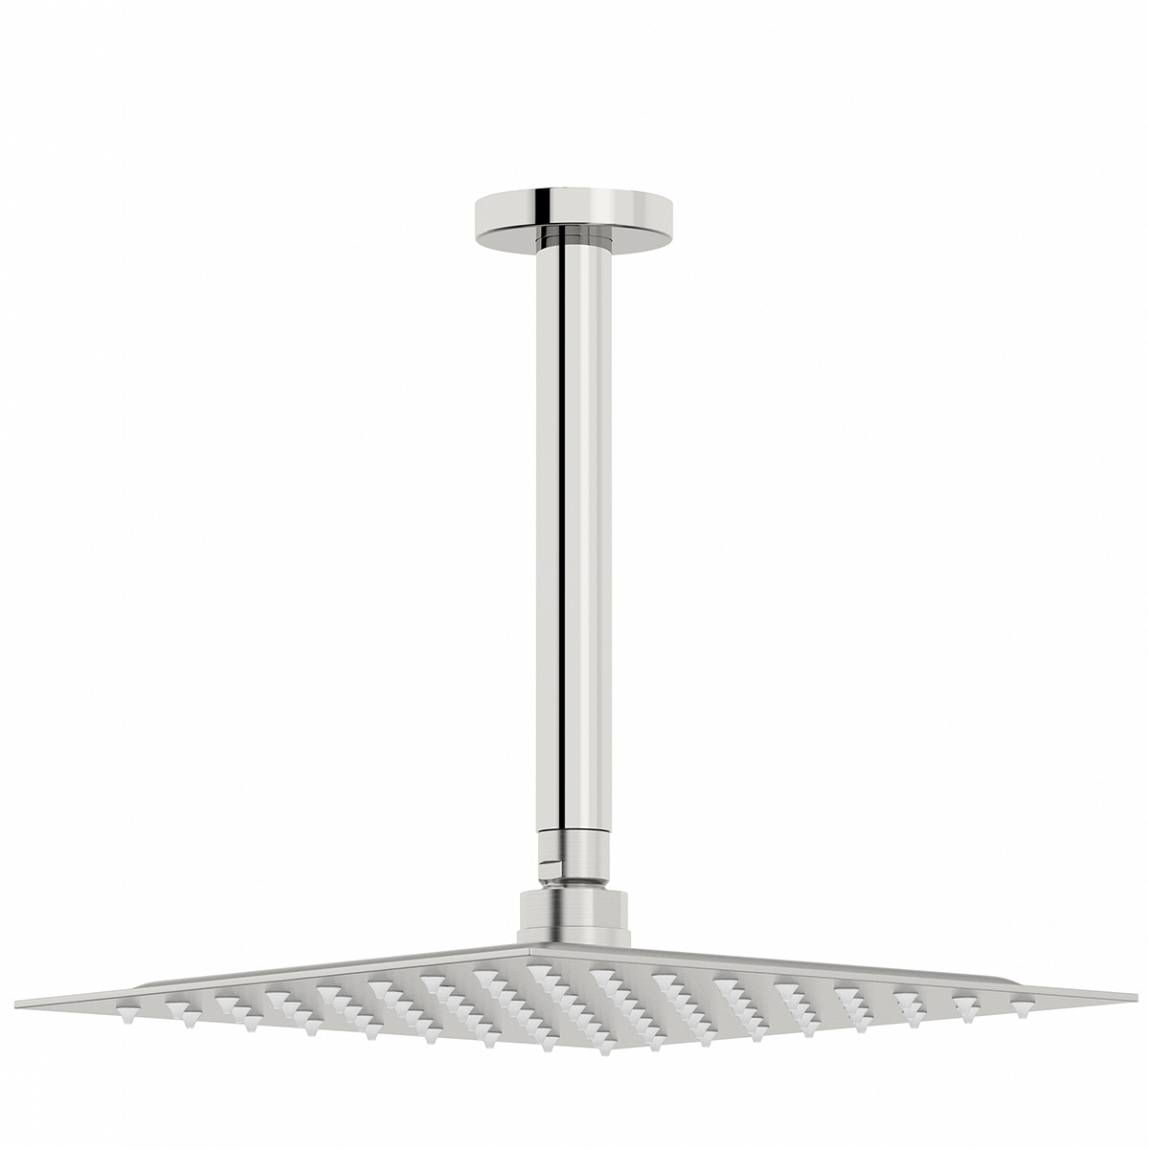 Image of Incus 250mm Shower Head & Round Ceiling Arm